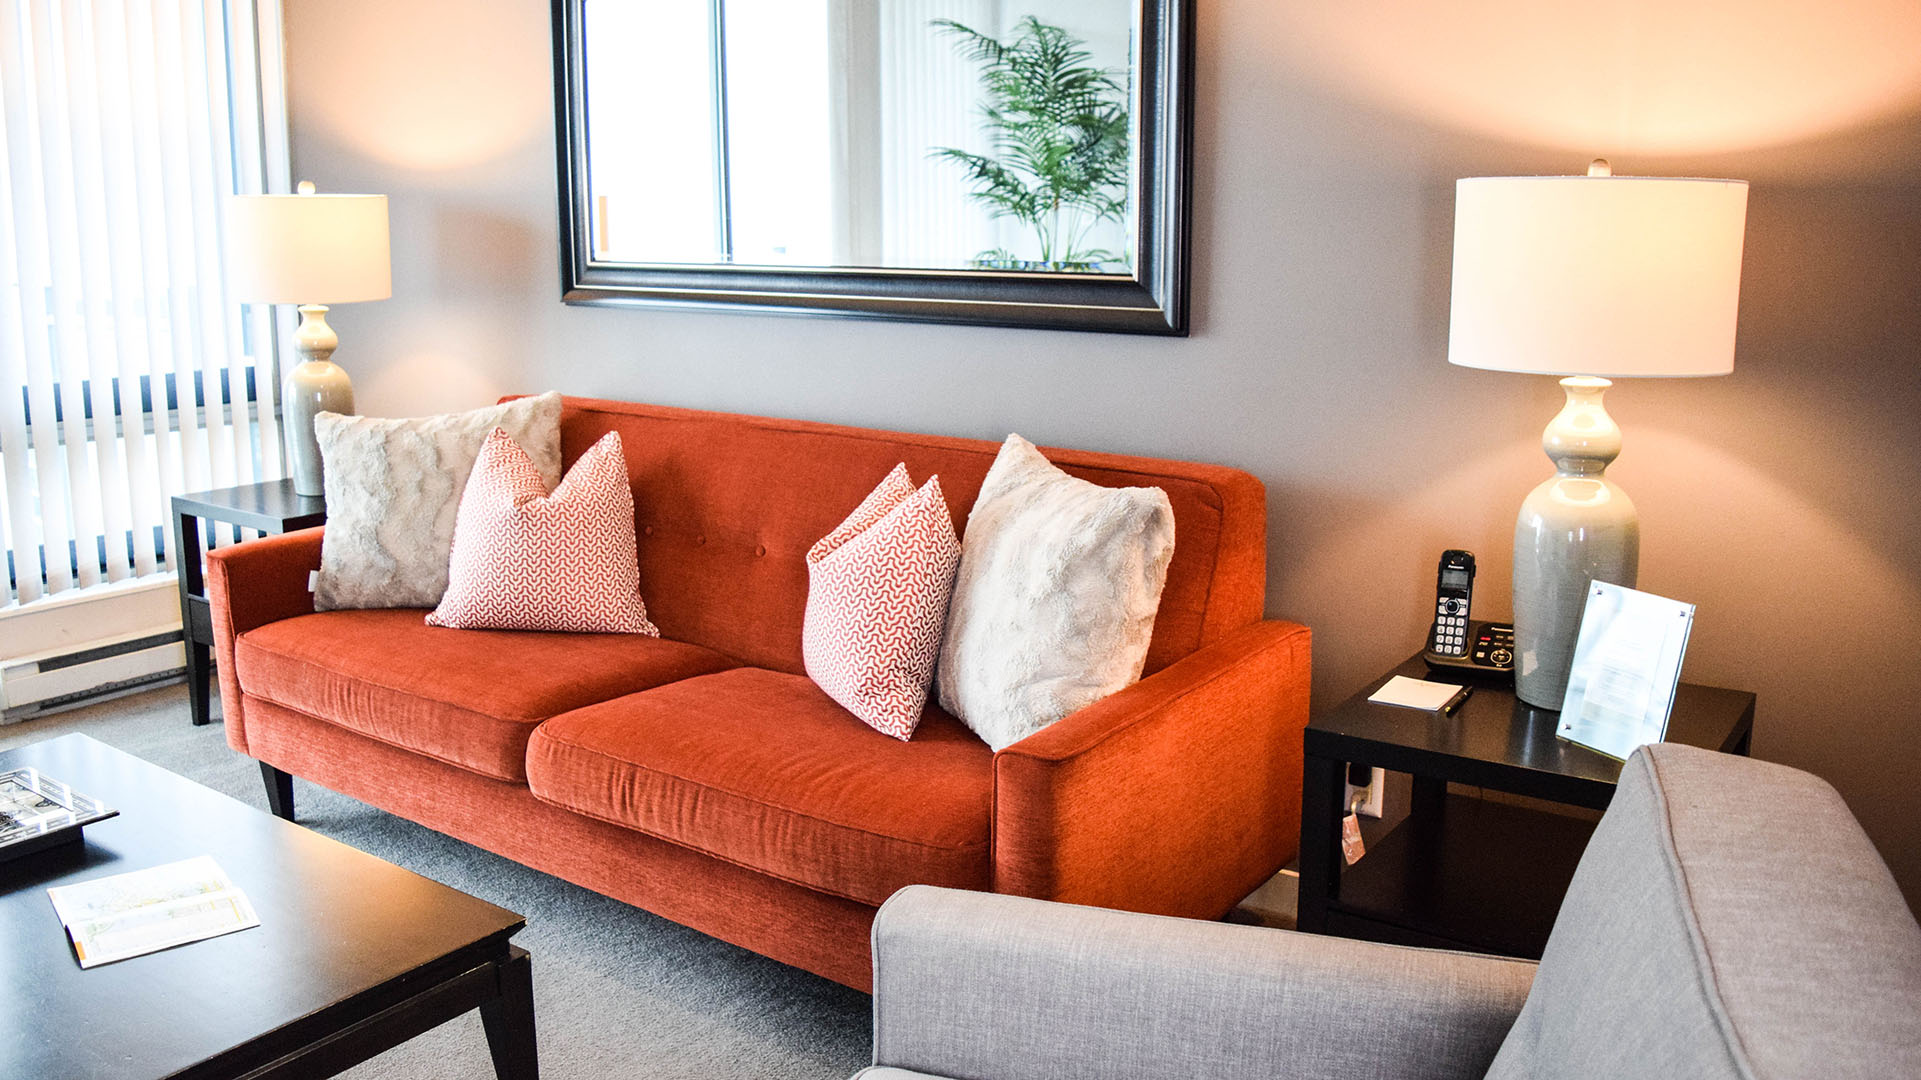 Photo of fully furnished apartment #3206 at The Residences on Georgia, 1200 West Georgia Street, Vancouver, BC